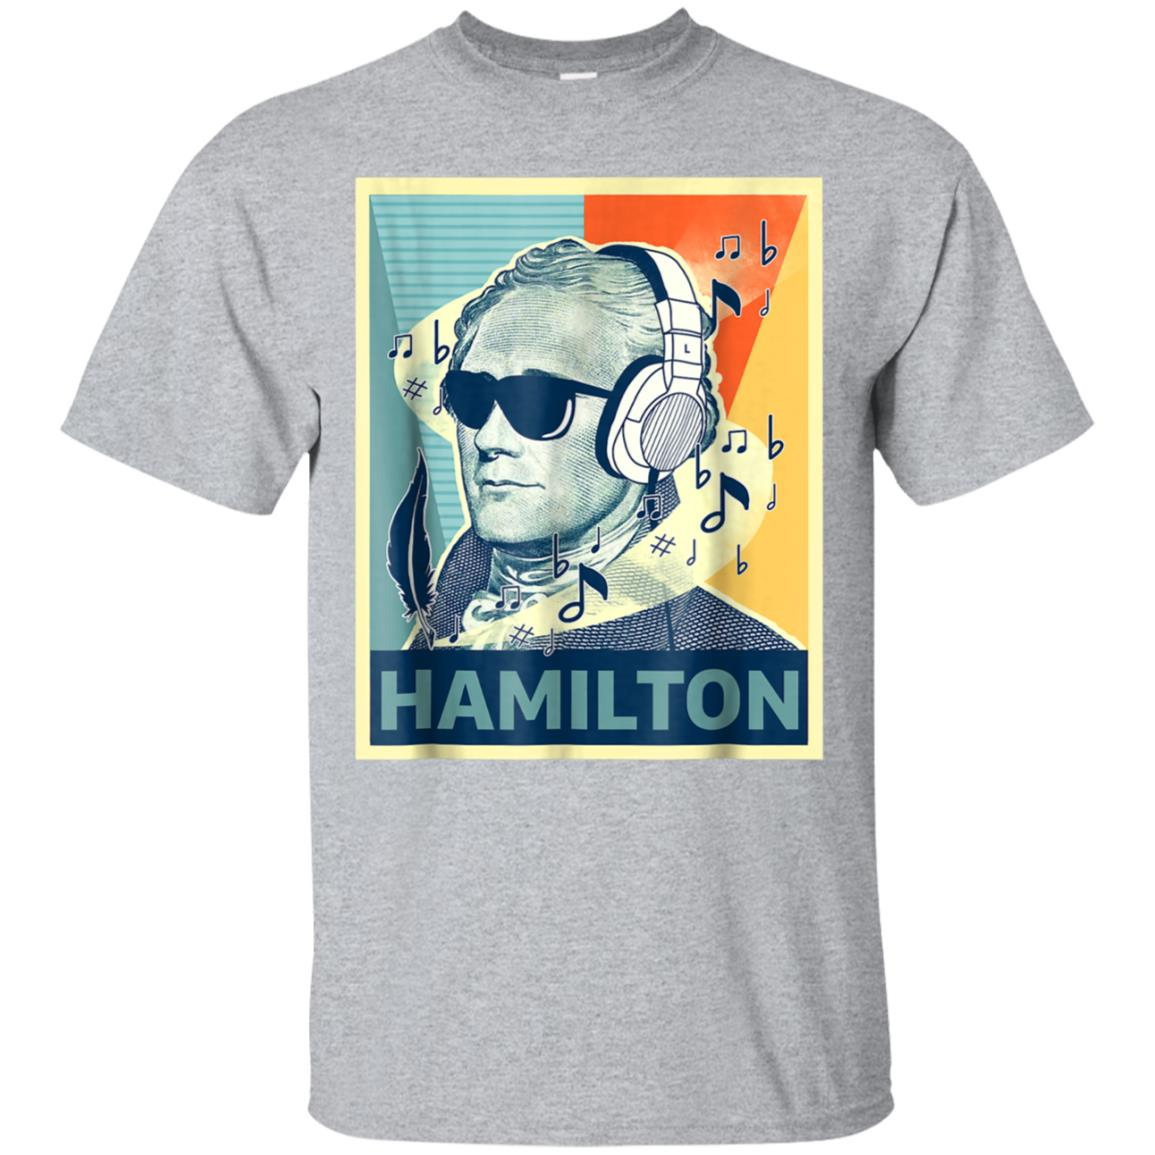 Hamilton Shirt Wearing Sunglasses 99promocode